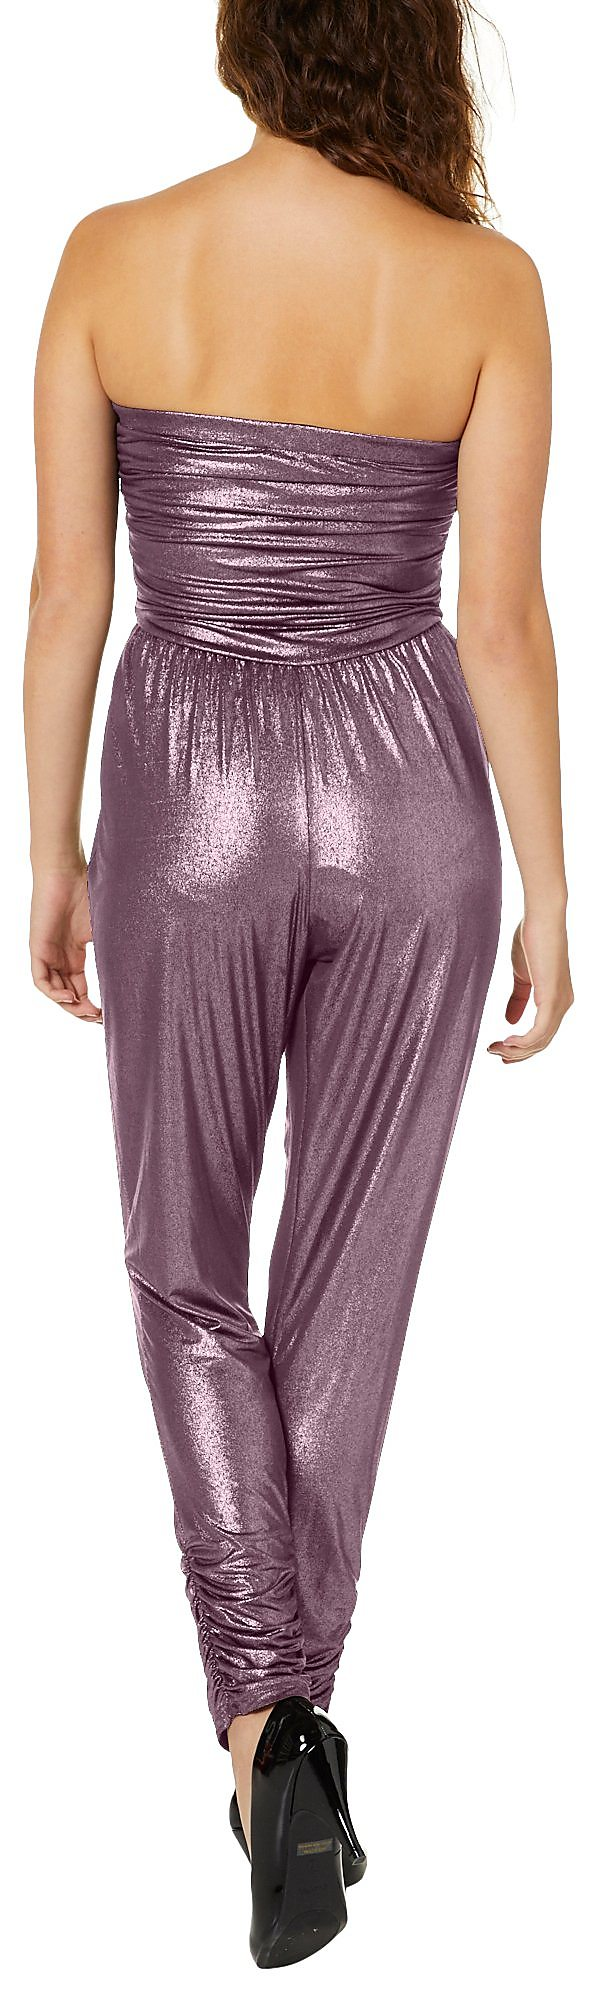 dc7c2151c97 No Comment Juniors Metallic Strapless Jumpsuit